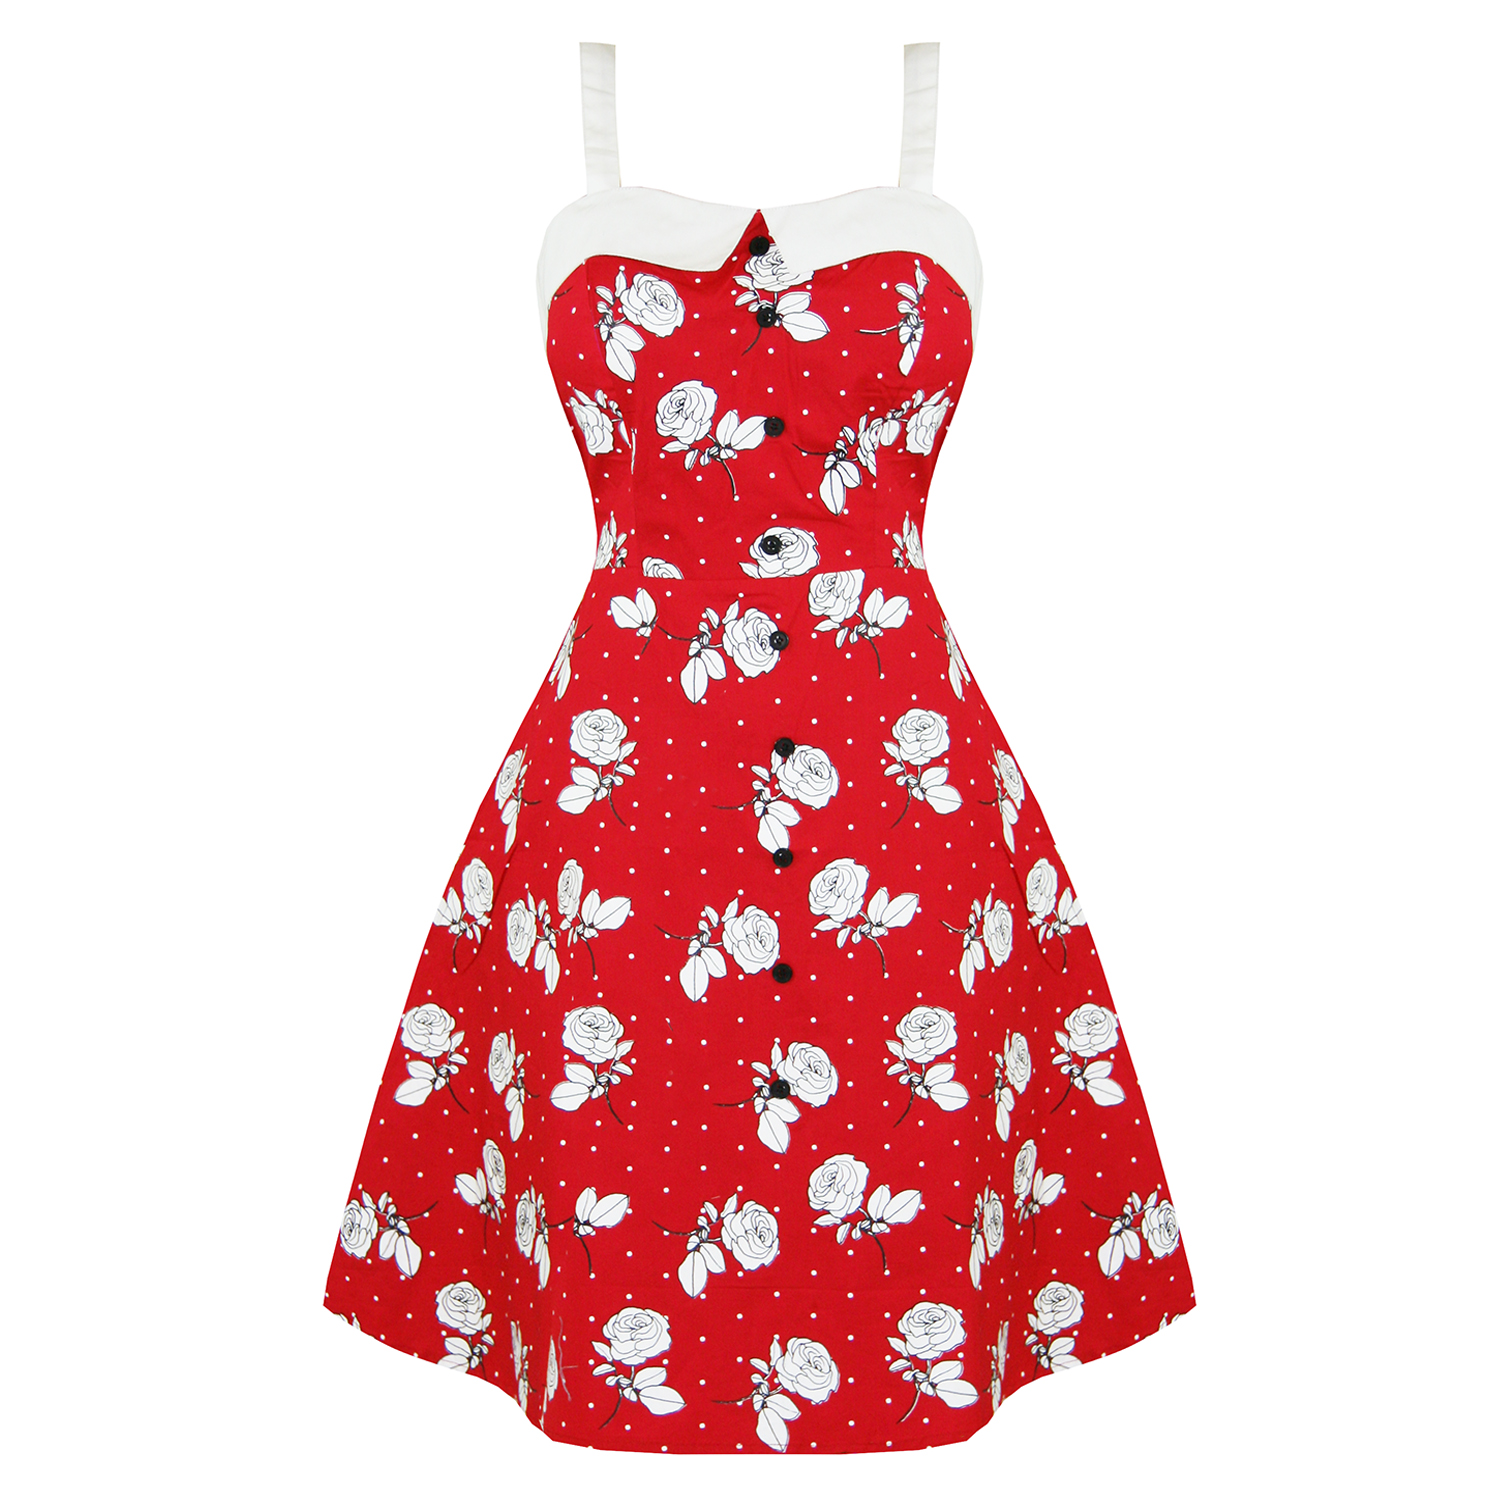 robe femme dead threads pin up annees 50 rouge fleur rose With robe rouge à fleurs